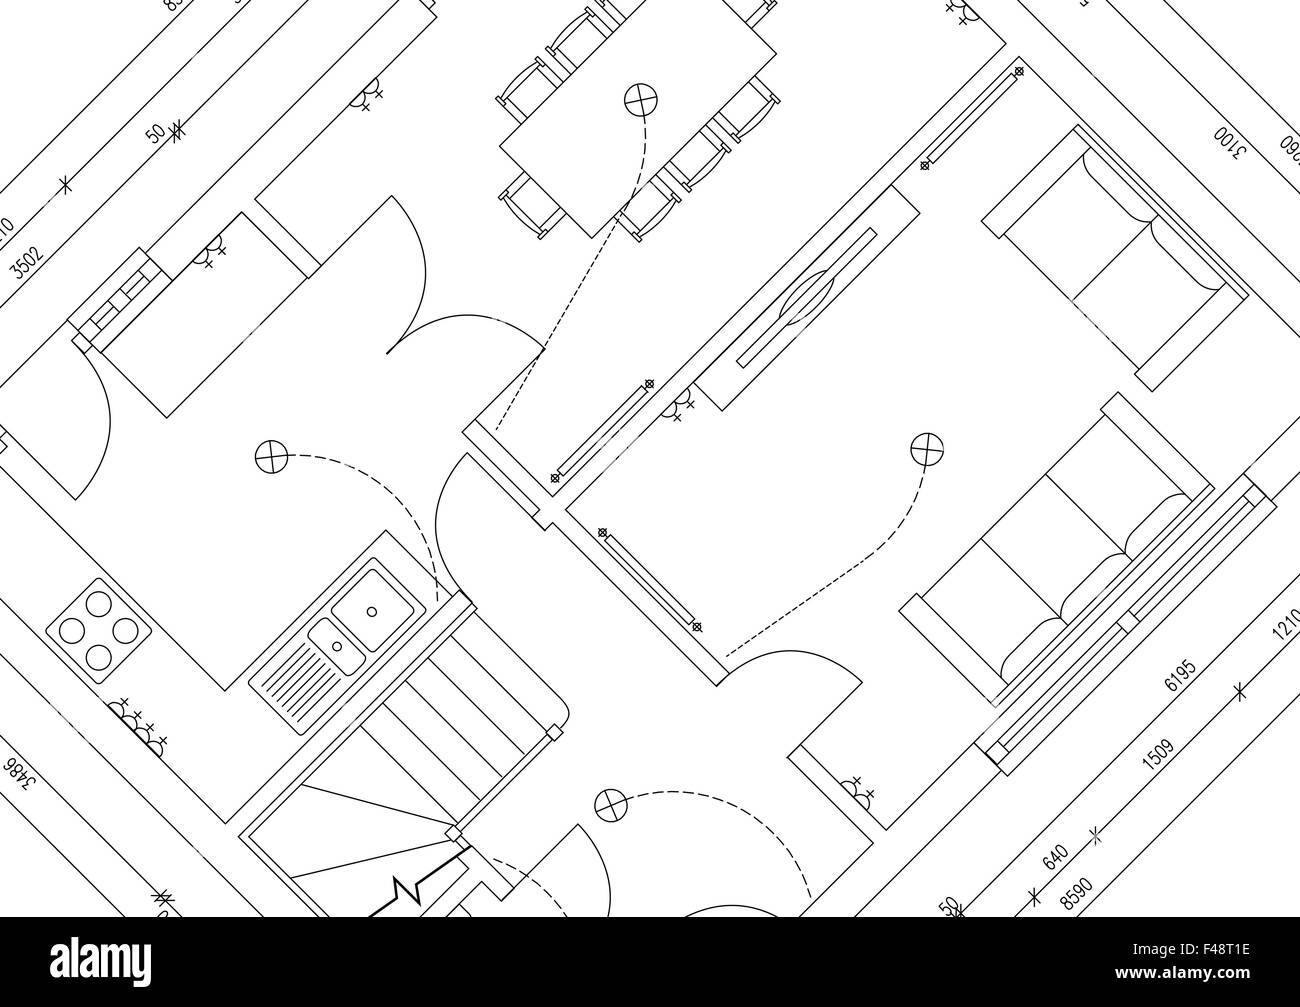 Blueprint plan of 3 bedroom house stock photo royalty free image blueprint plan of 3 bedroom house malvernweather Images